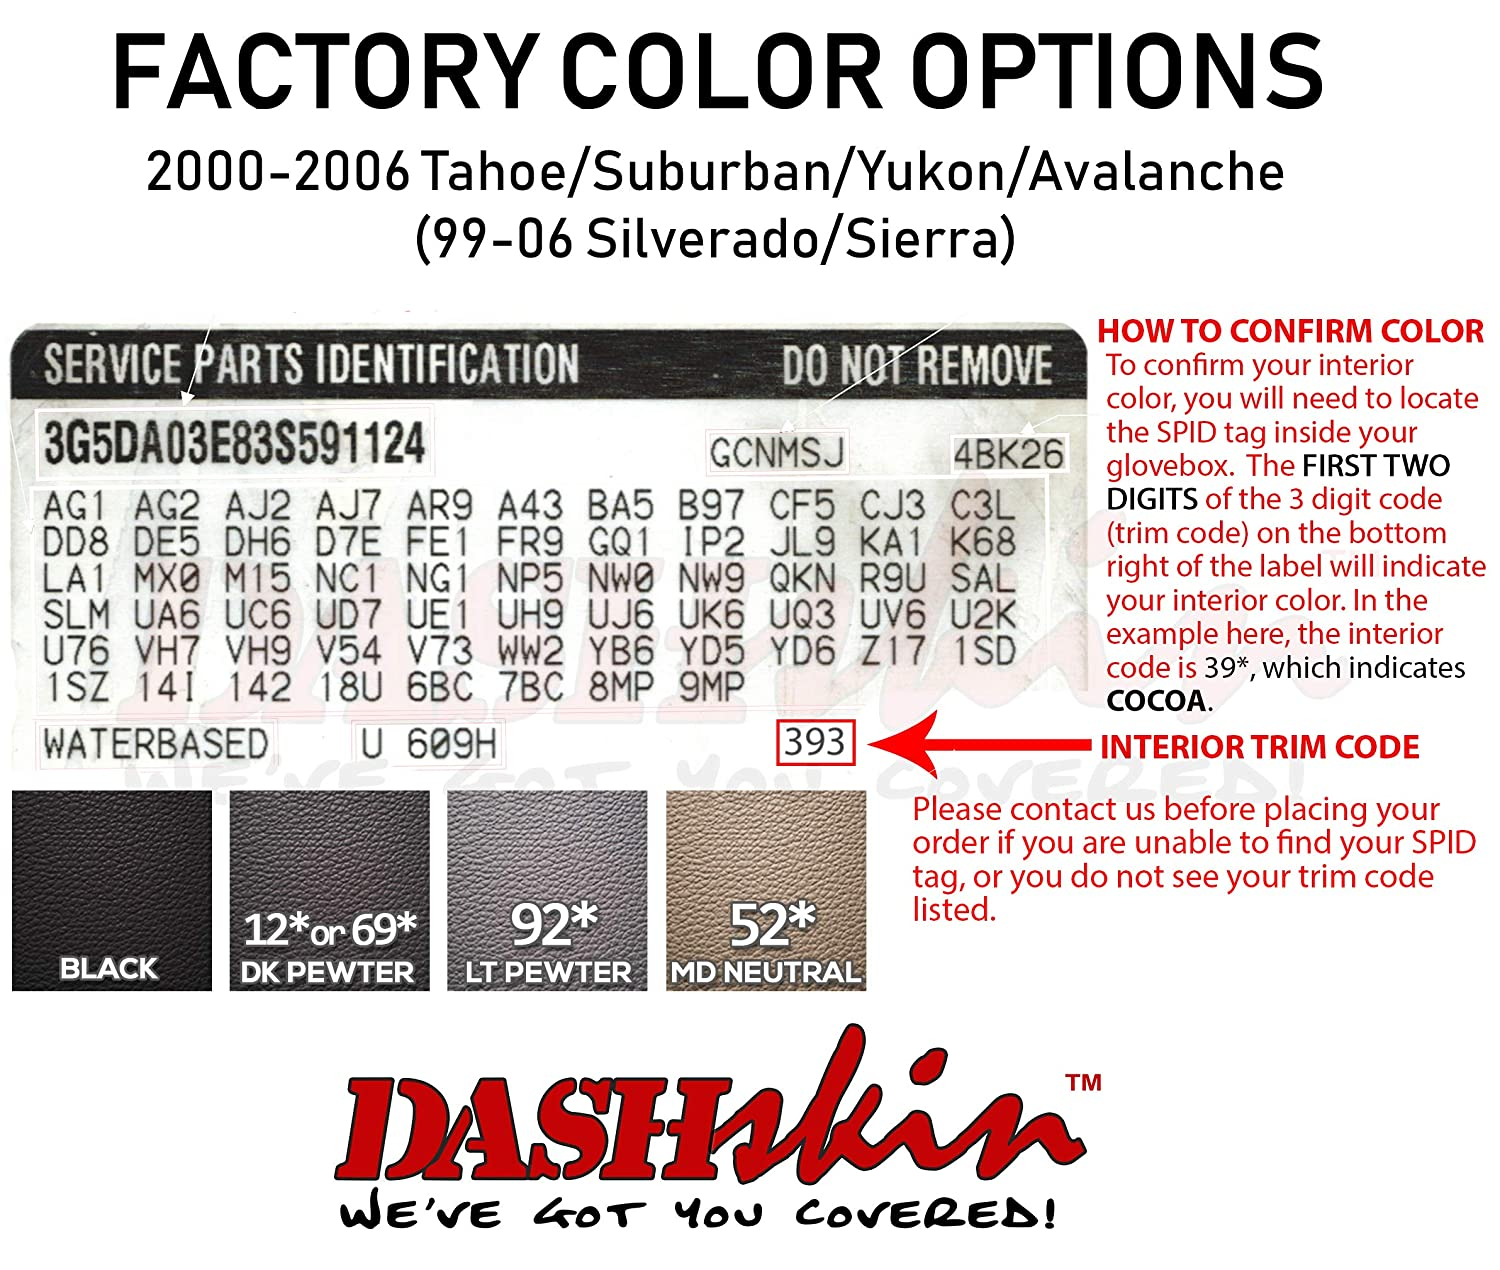 DashSkin Molded Dash Cover Compatible with 00-06 GM SUVs exc Escalade and 99-06 Pickups in Light Pewter Grey